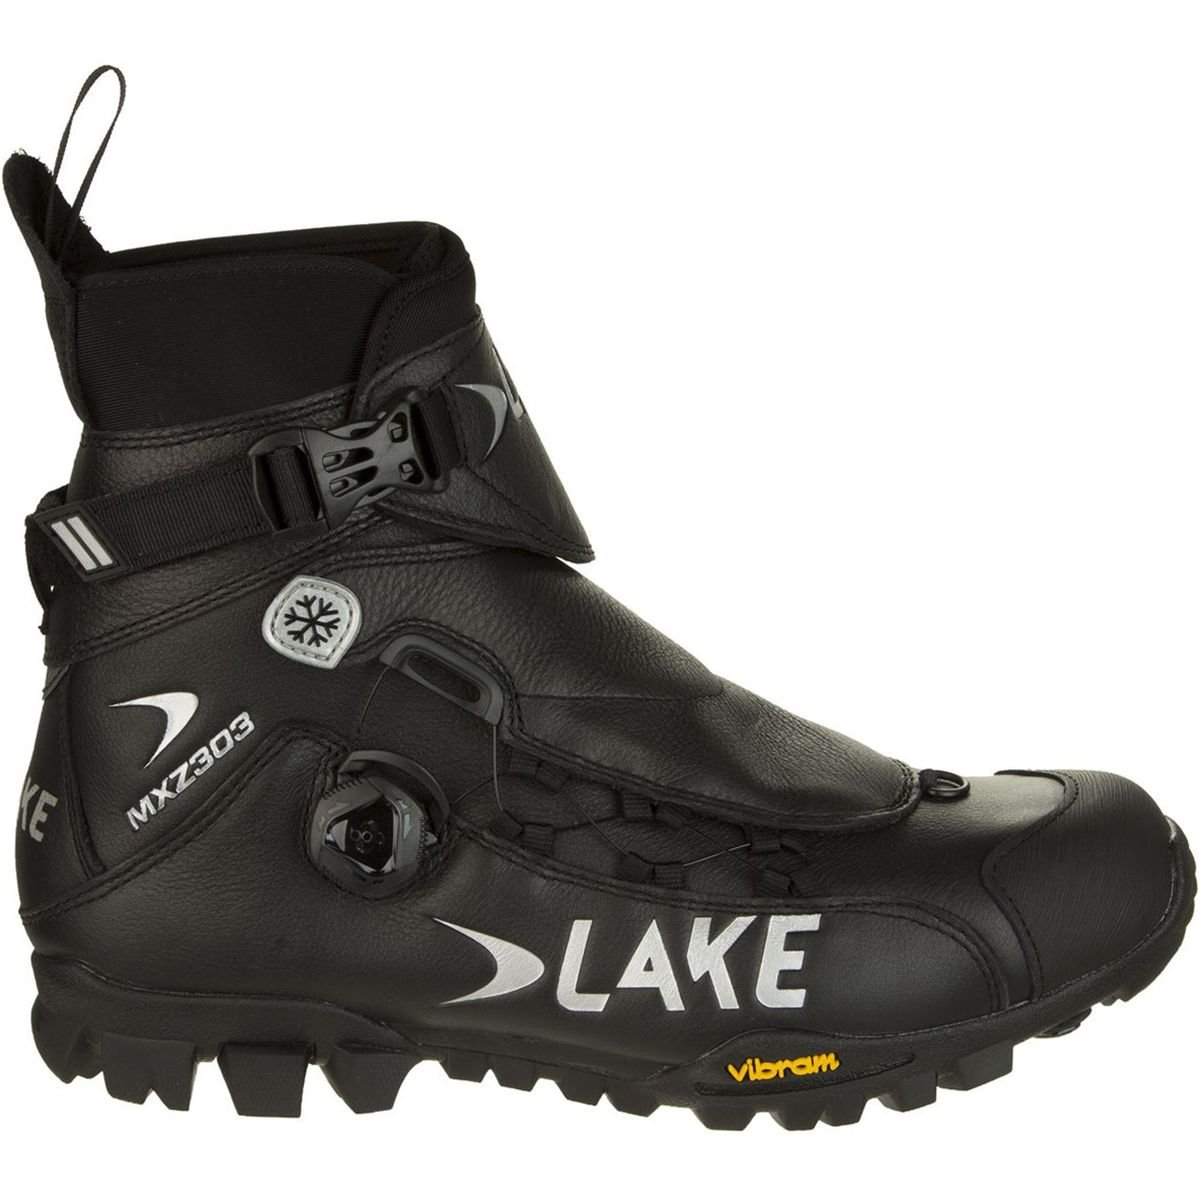 Lake MXZ 303 Winter Boots Black, 44.0 - Men's